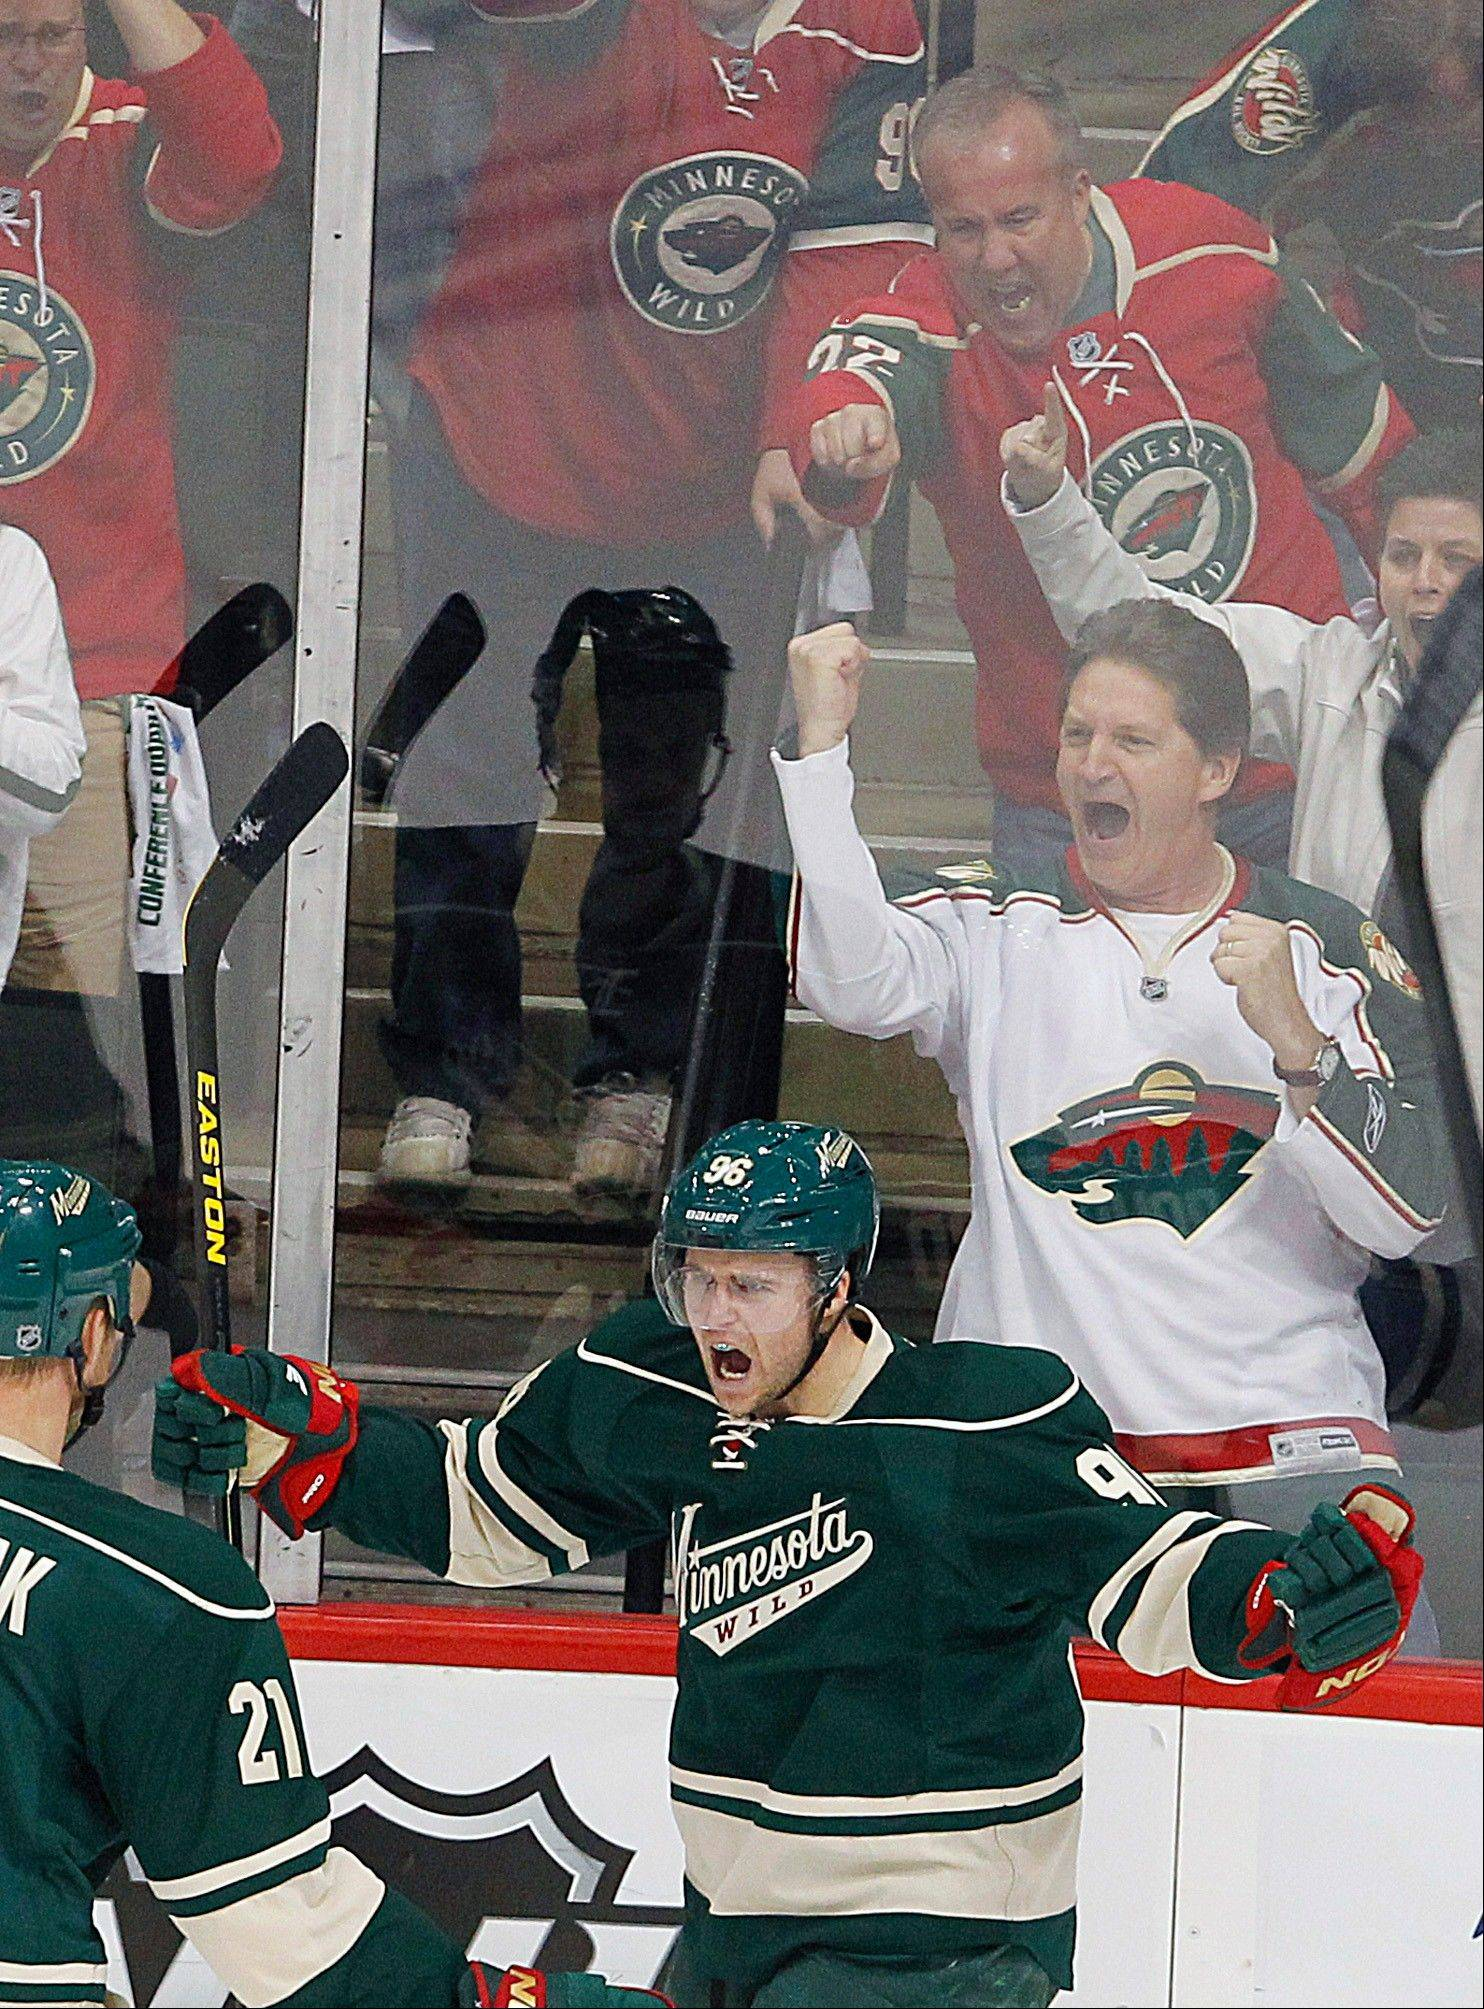 As fans, background, react, Minnesota Wild's Pierre-Marc Bouchard celebrates his goal against the Chicago Blackhawks in first period.